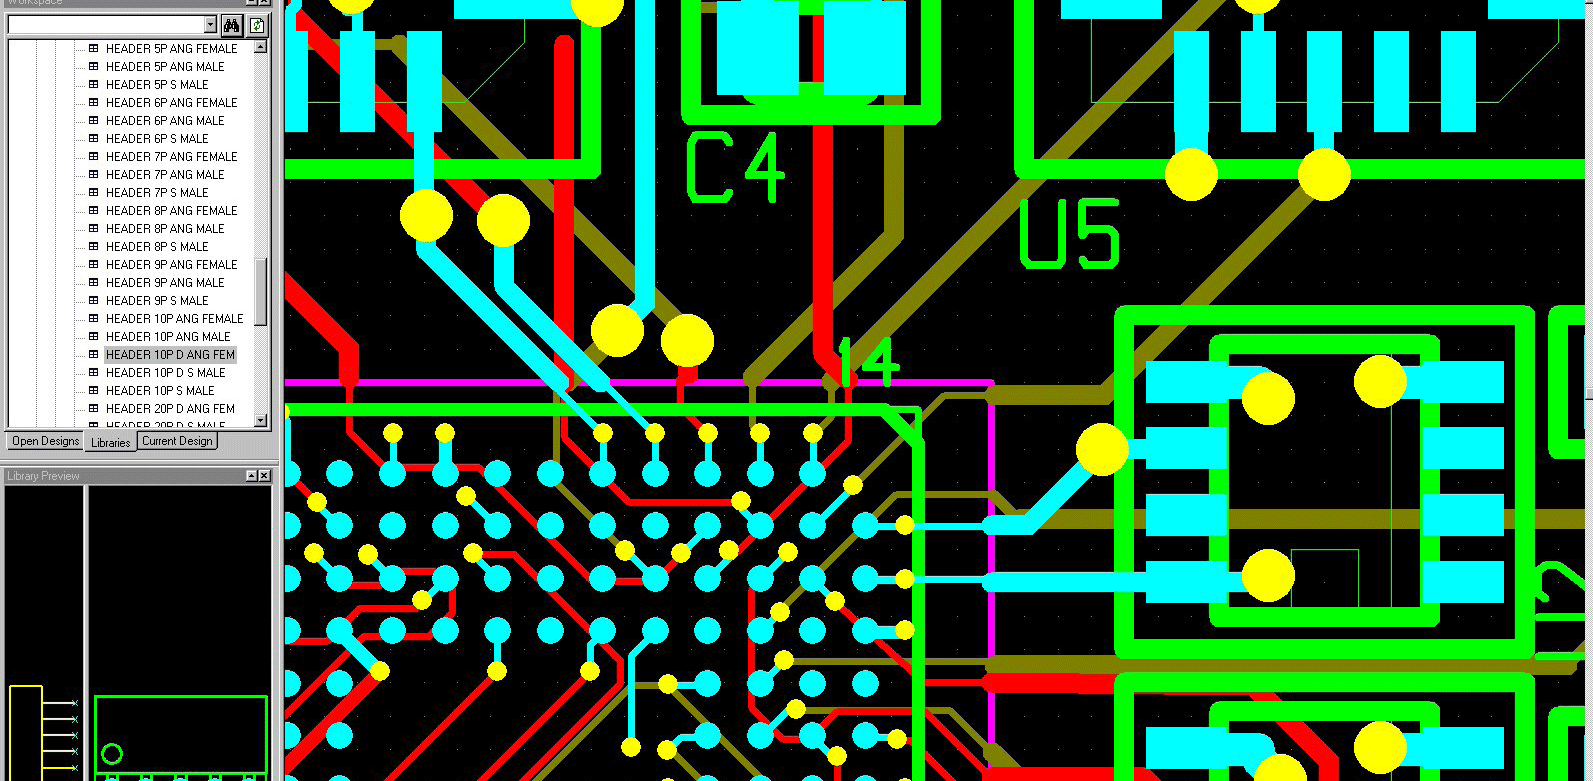 pcb design software cadstar rules by area display of the used design rules